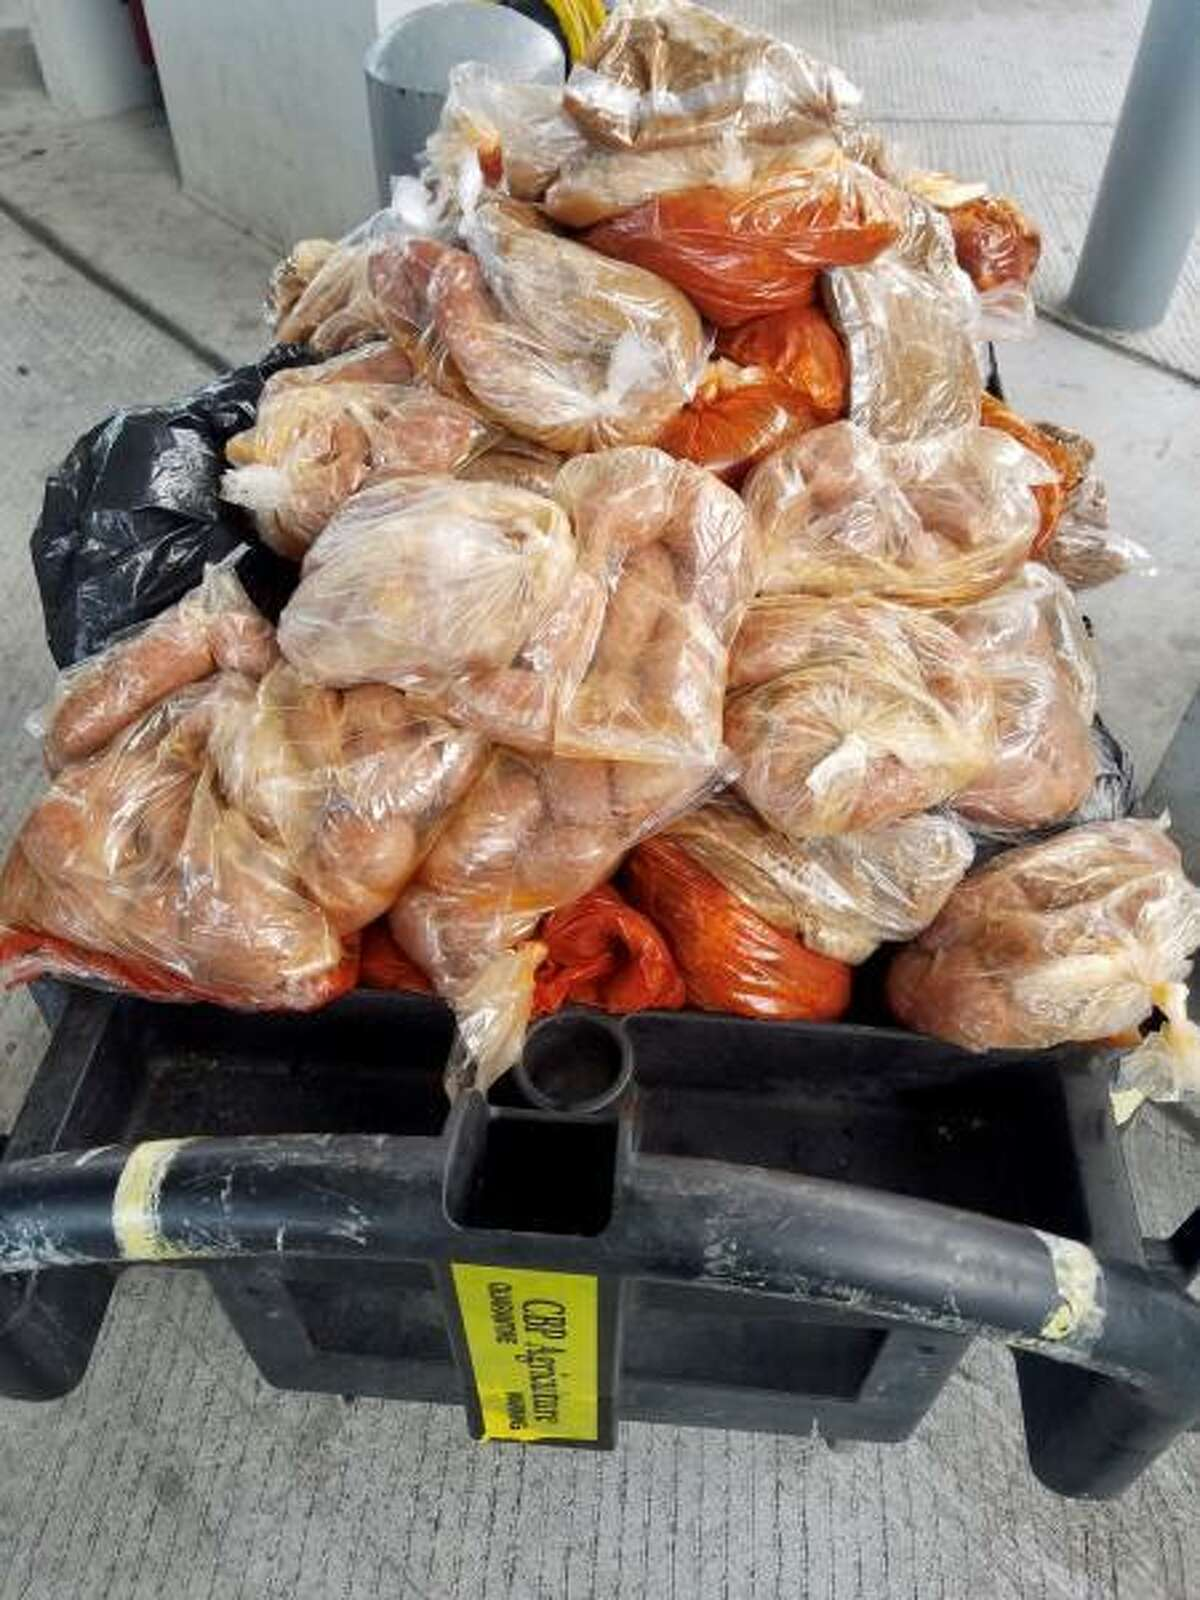 201 pounds of pork was found hidden inside the engine compartment of a 1980 F-150 at the Texas-Mexico border on Wednesday, July 29.